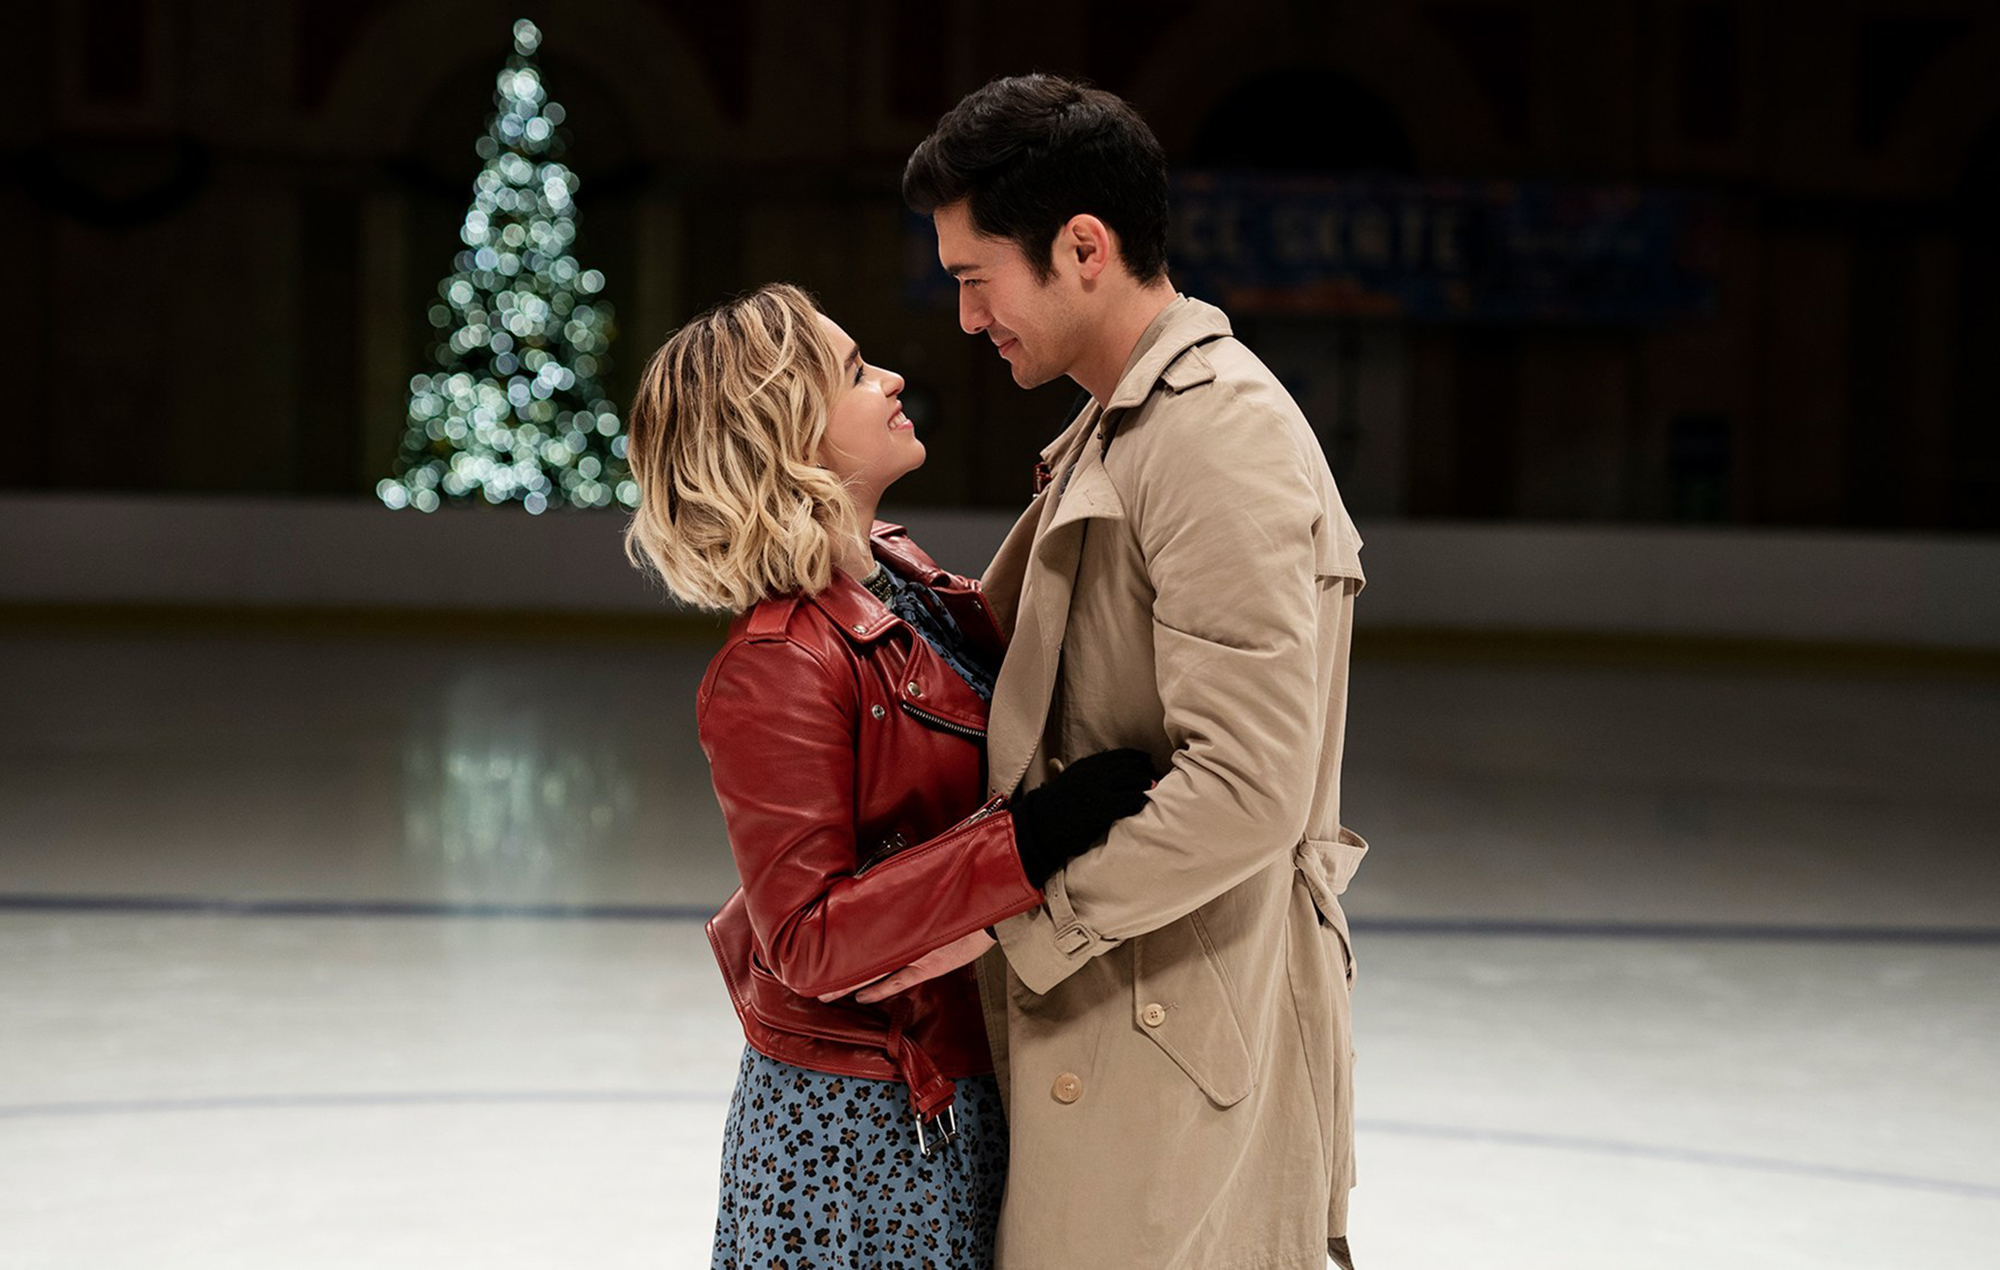 Kate (Clarke) and Tom (Golding) embrace in an ice rink.